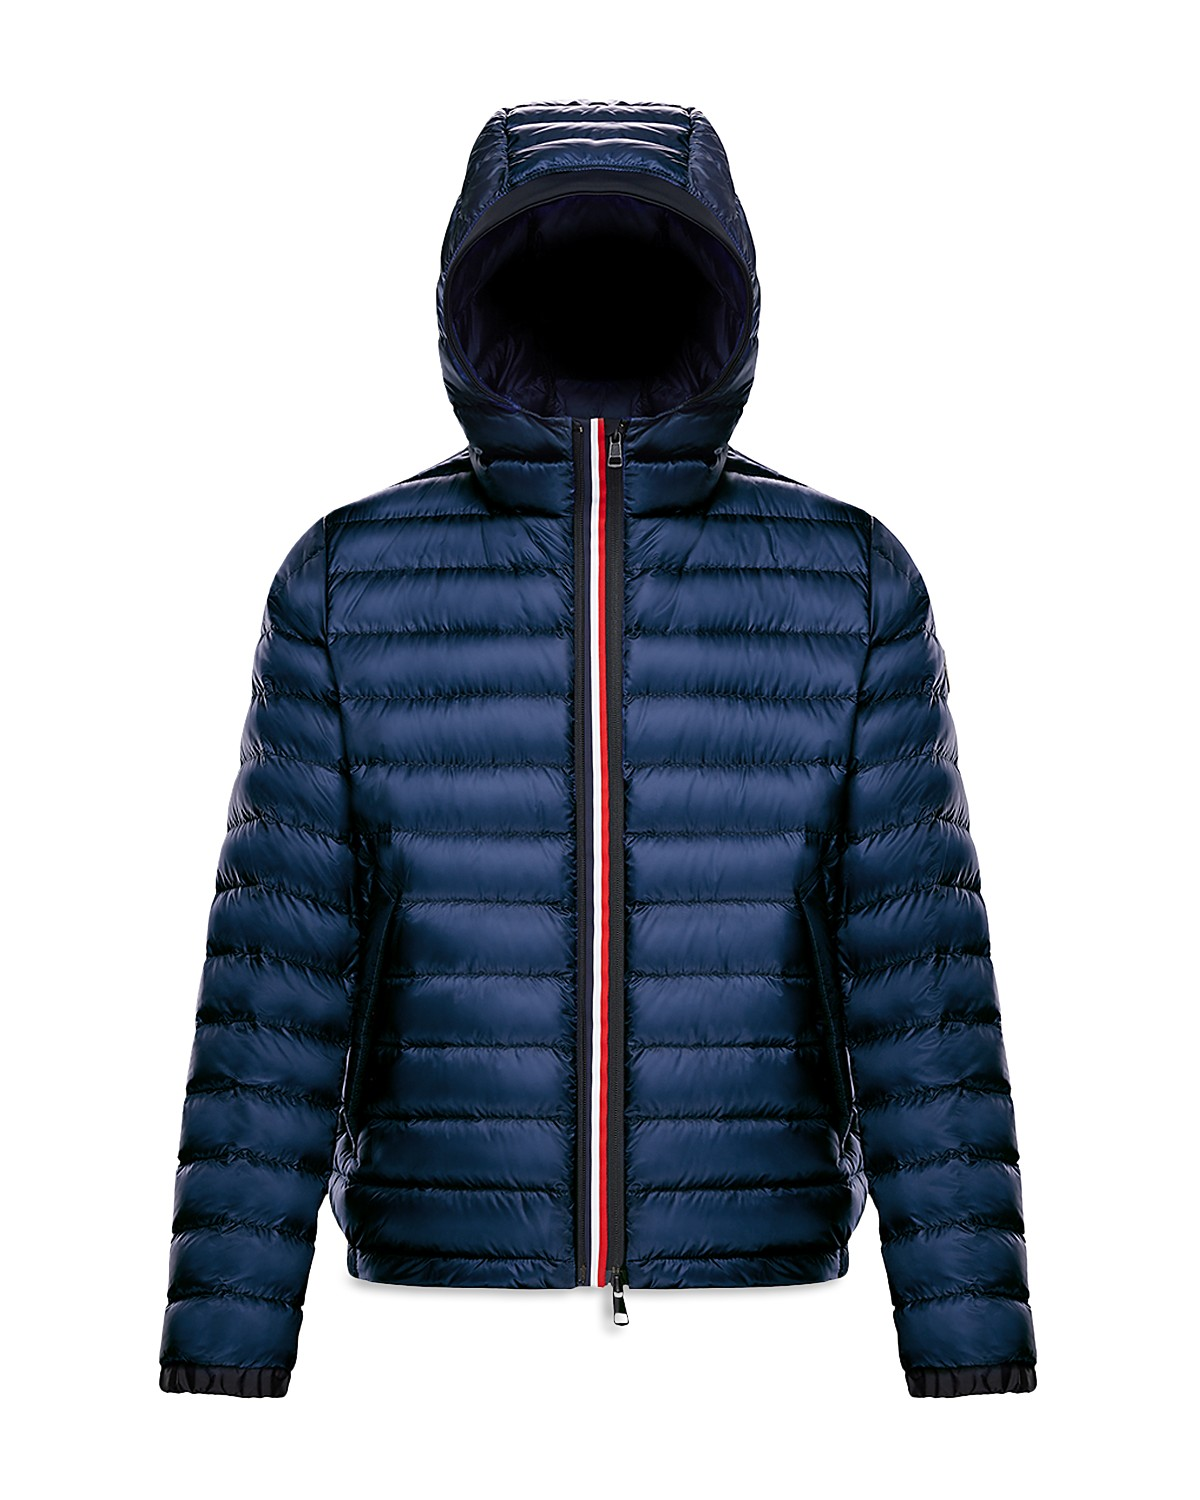 d614139f7 discount code for moncler navy jacket 4625a 2e4ae